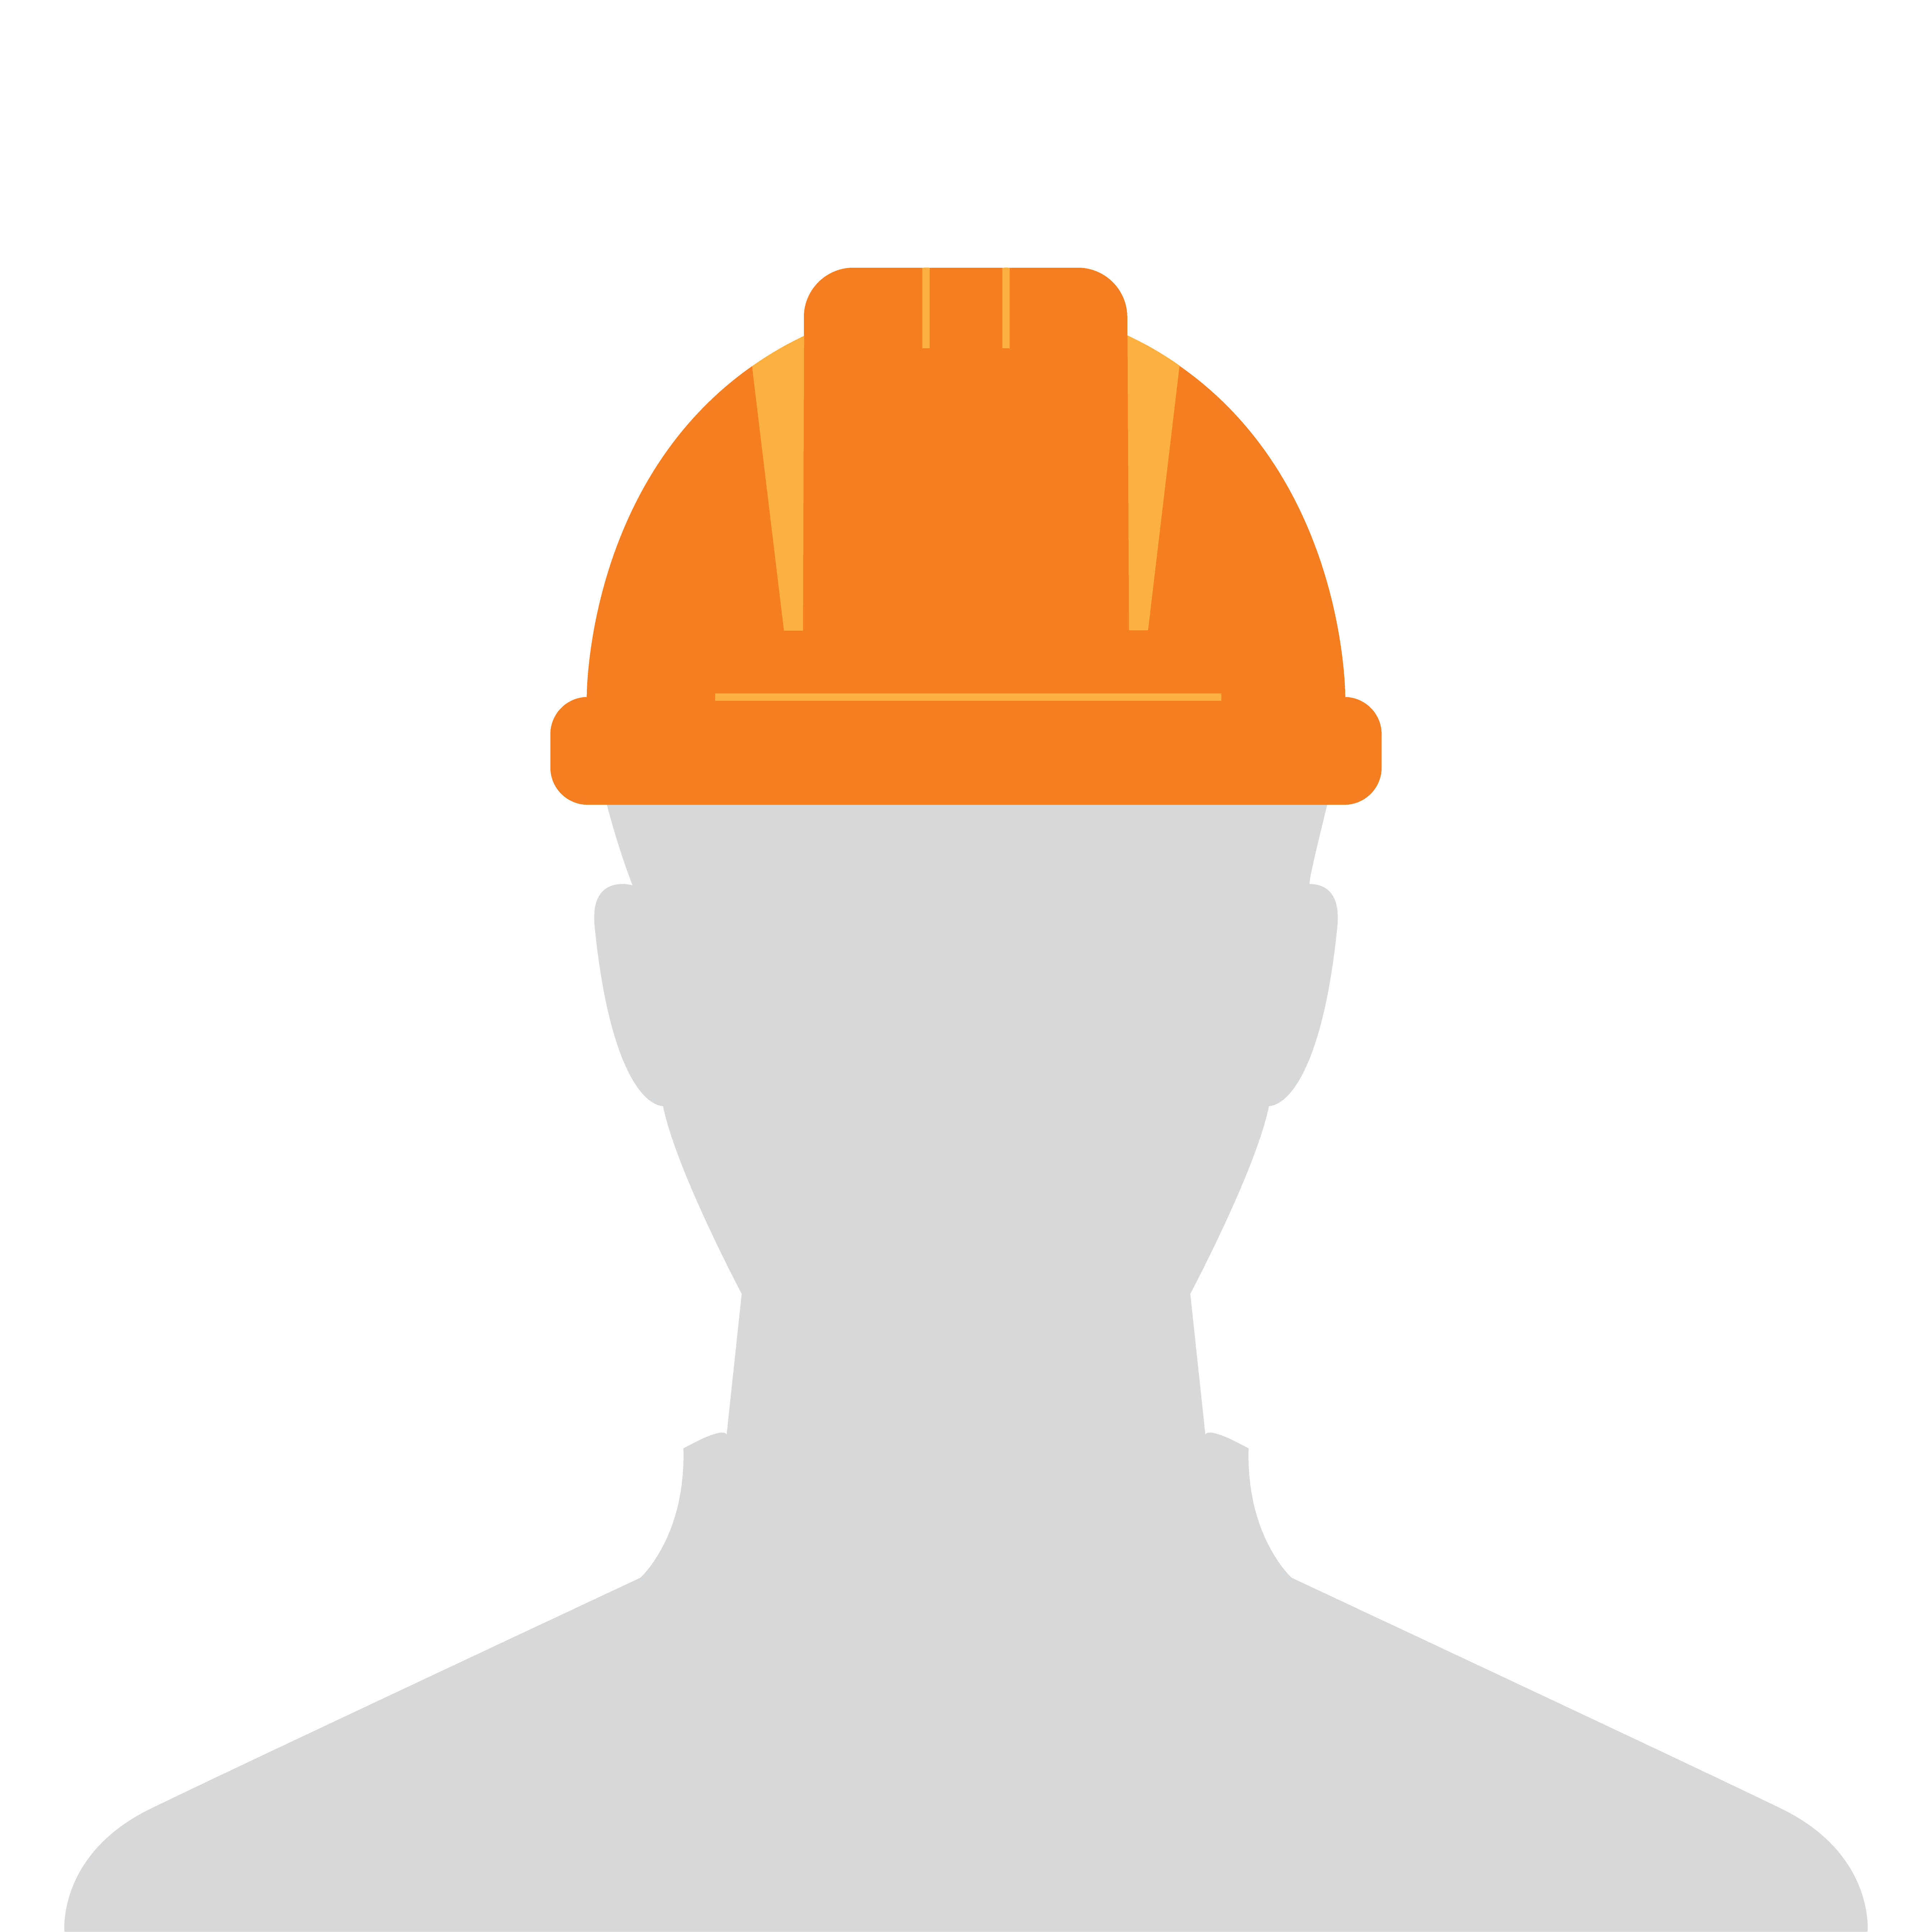 Employee Placeholder - Male